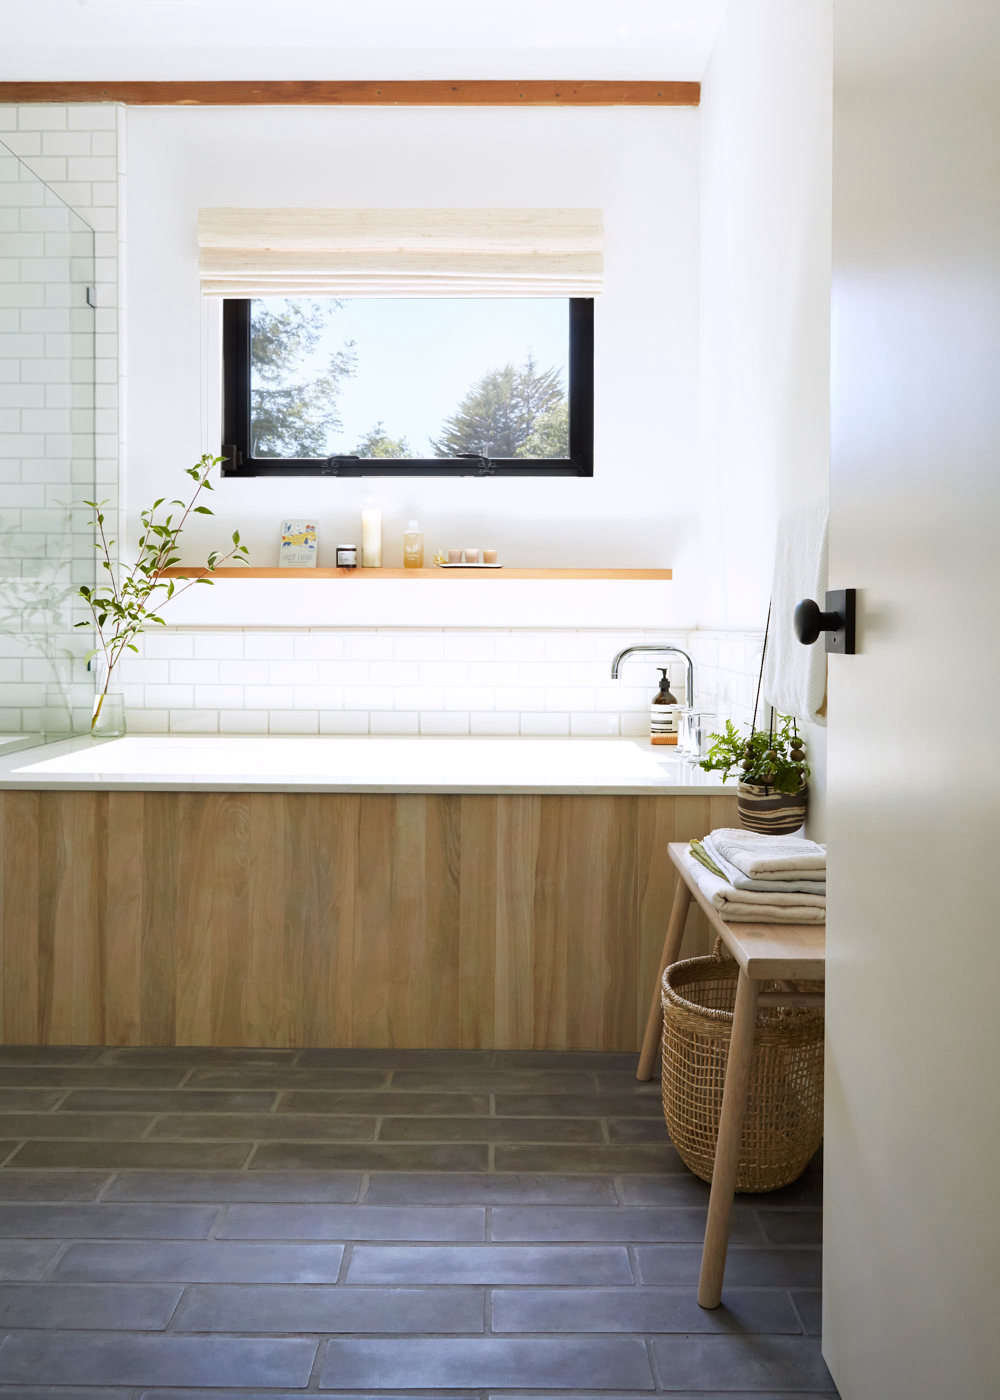 The wood-grained ceramic exterior tub tile is from Vallelunga & Co. (VL-3006 Tabula Miele). &#8